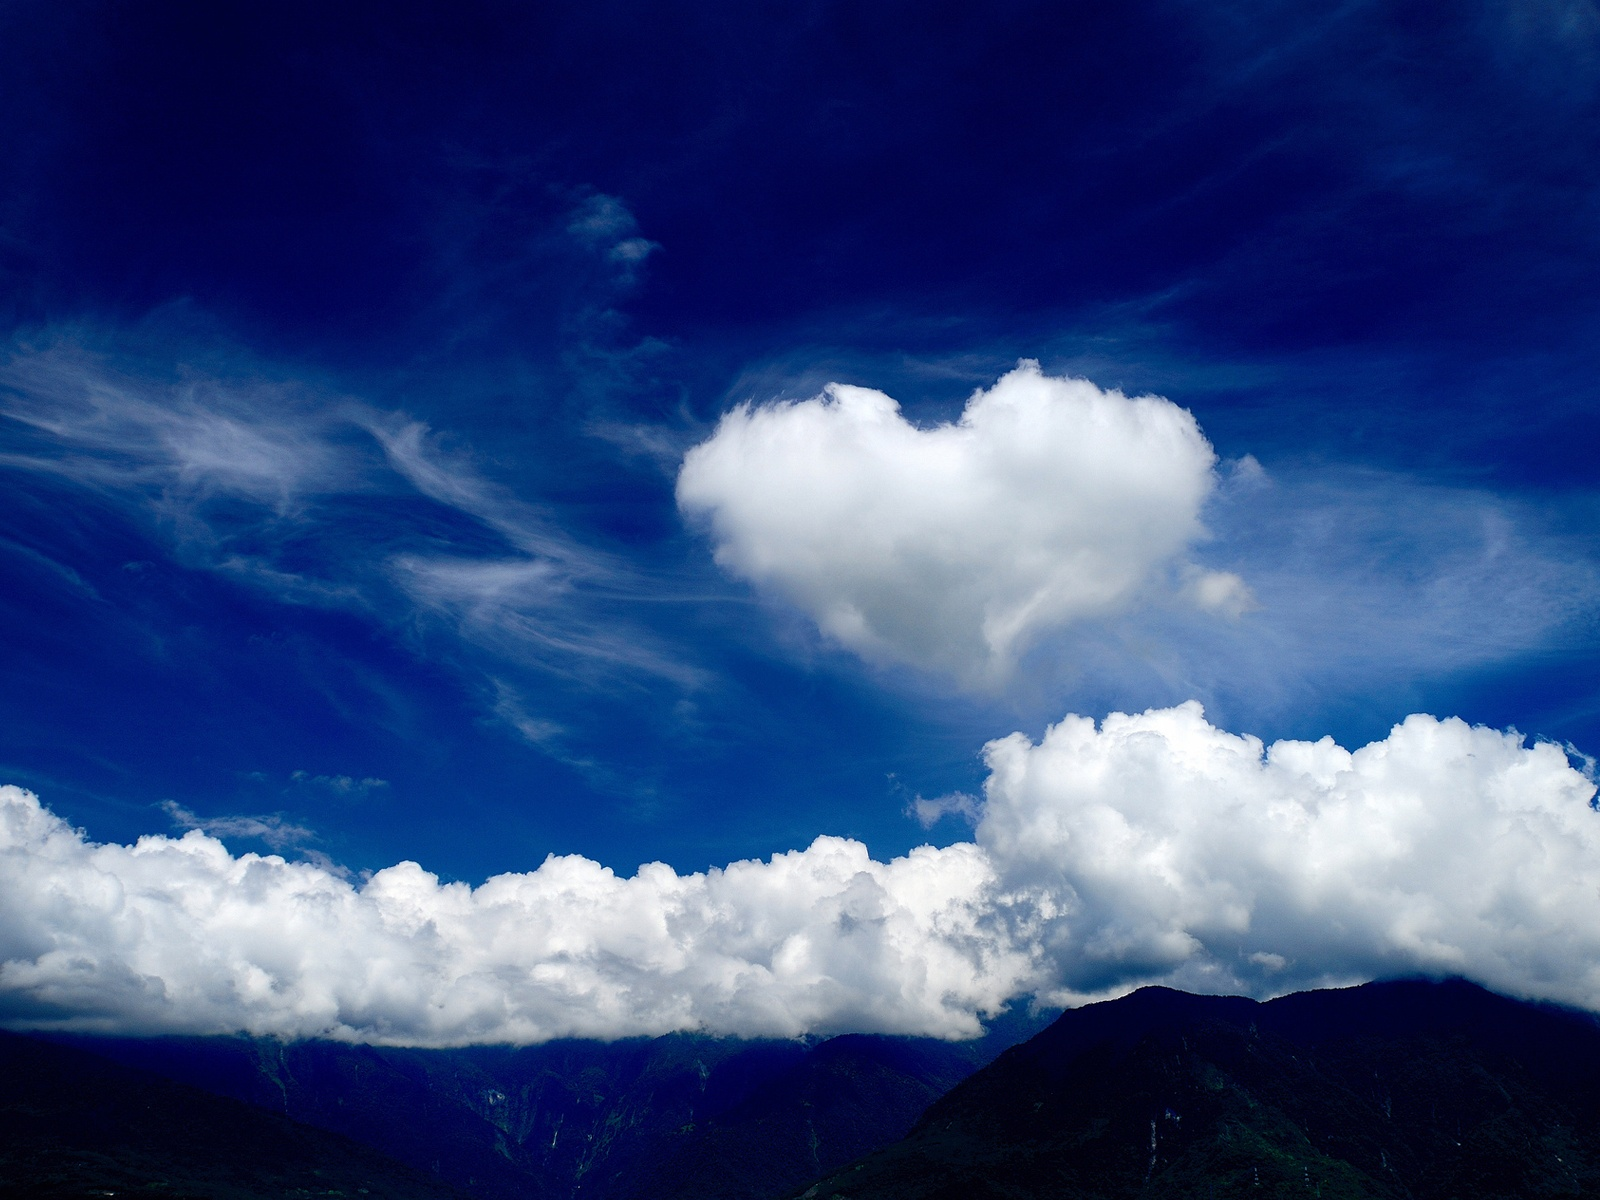 3d love with clouds wallpaper, wallpaper for desktop